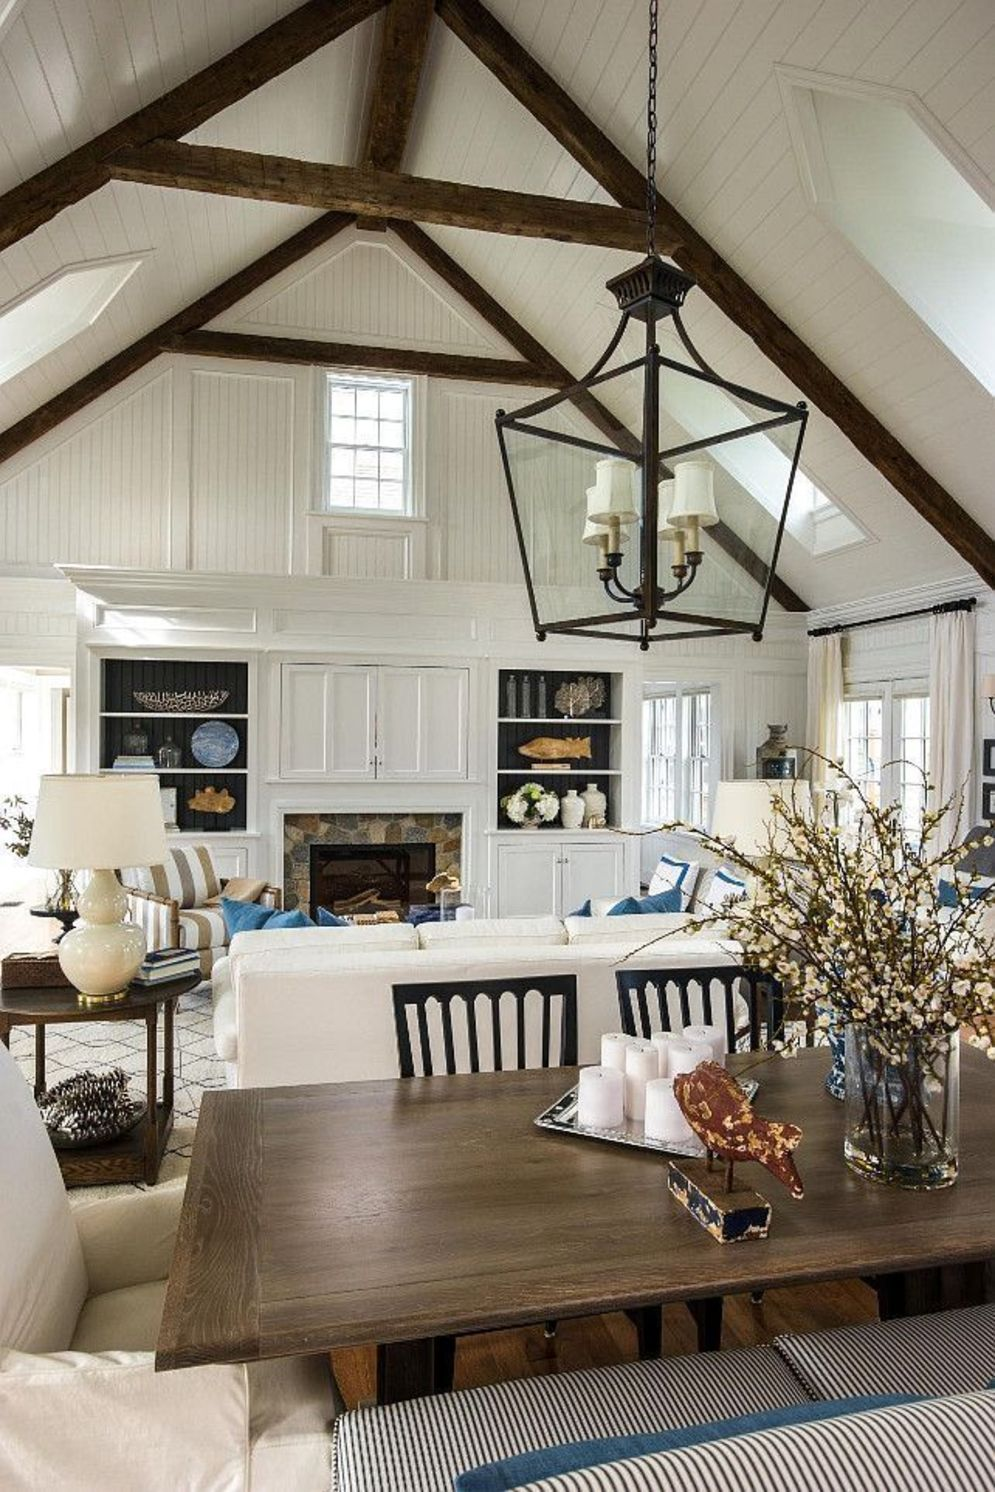 Classic home style with cathedral ceiling which looks gorgeous and grand along with classy interior taste Image 14